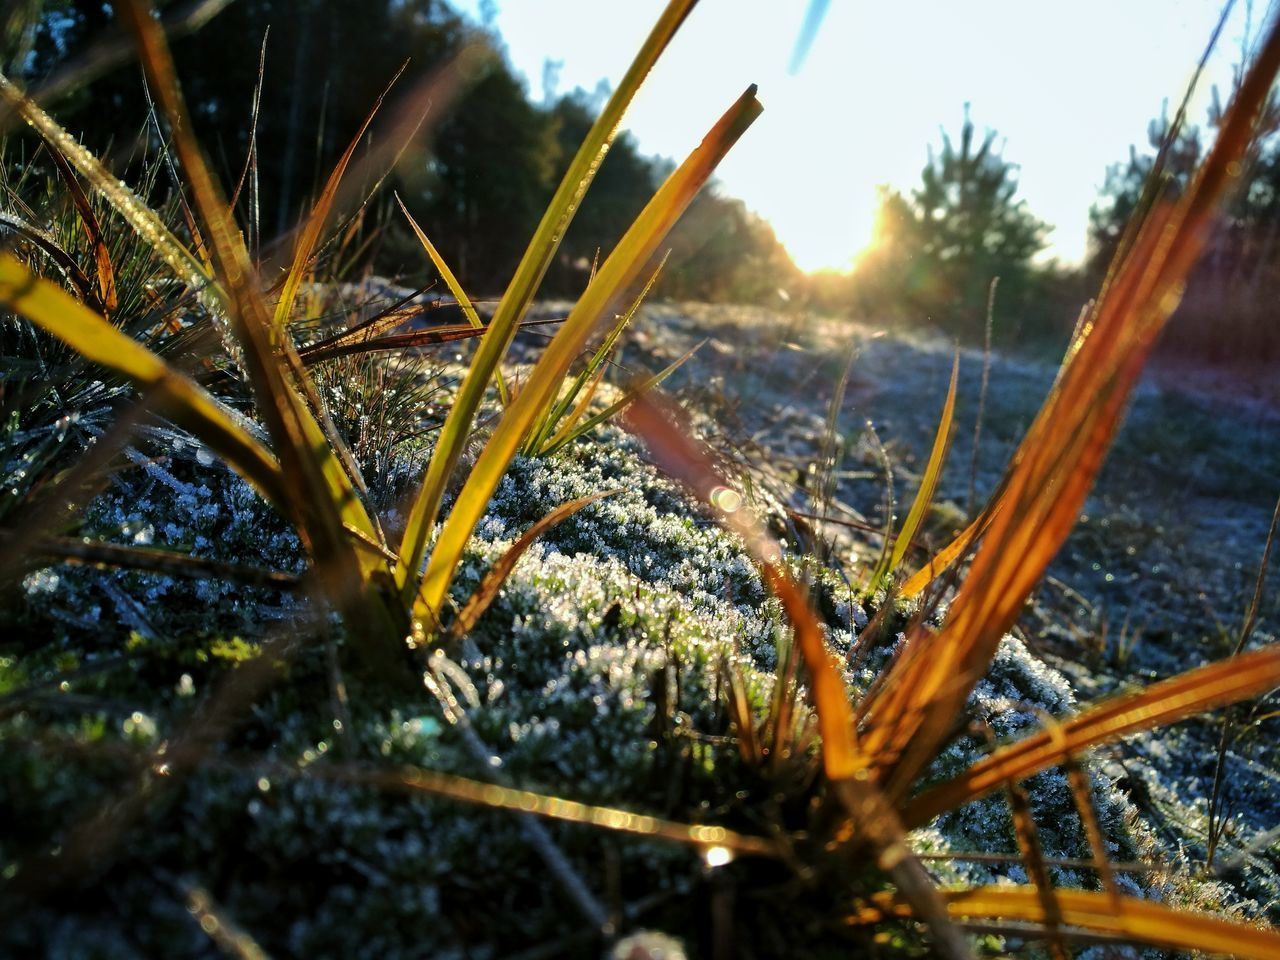 A Mountainbike ride in the Winter. Nature Outdoors Close-up Sky Snow Ice Crystals Sun Sunlight Awake Hope Picoftheday